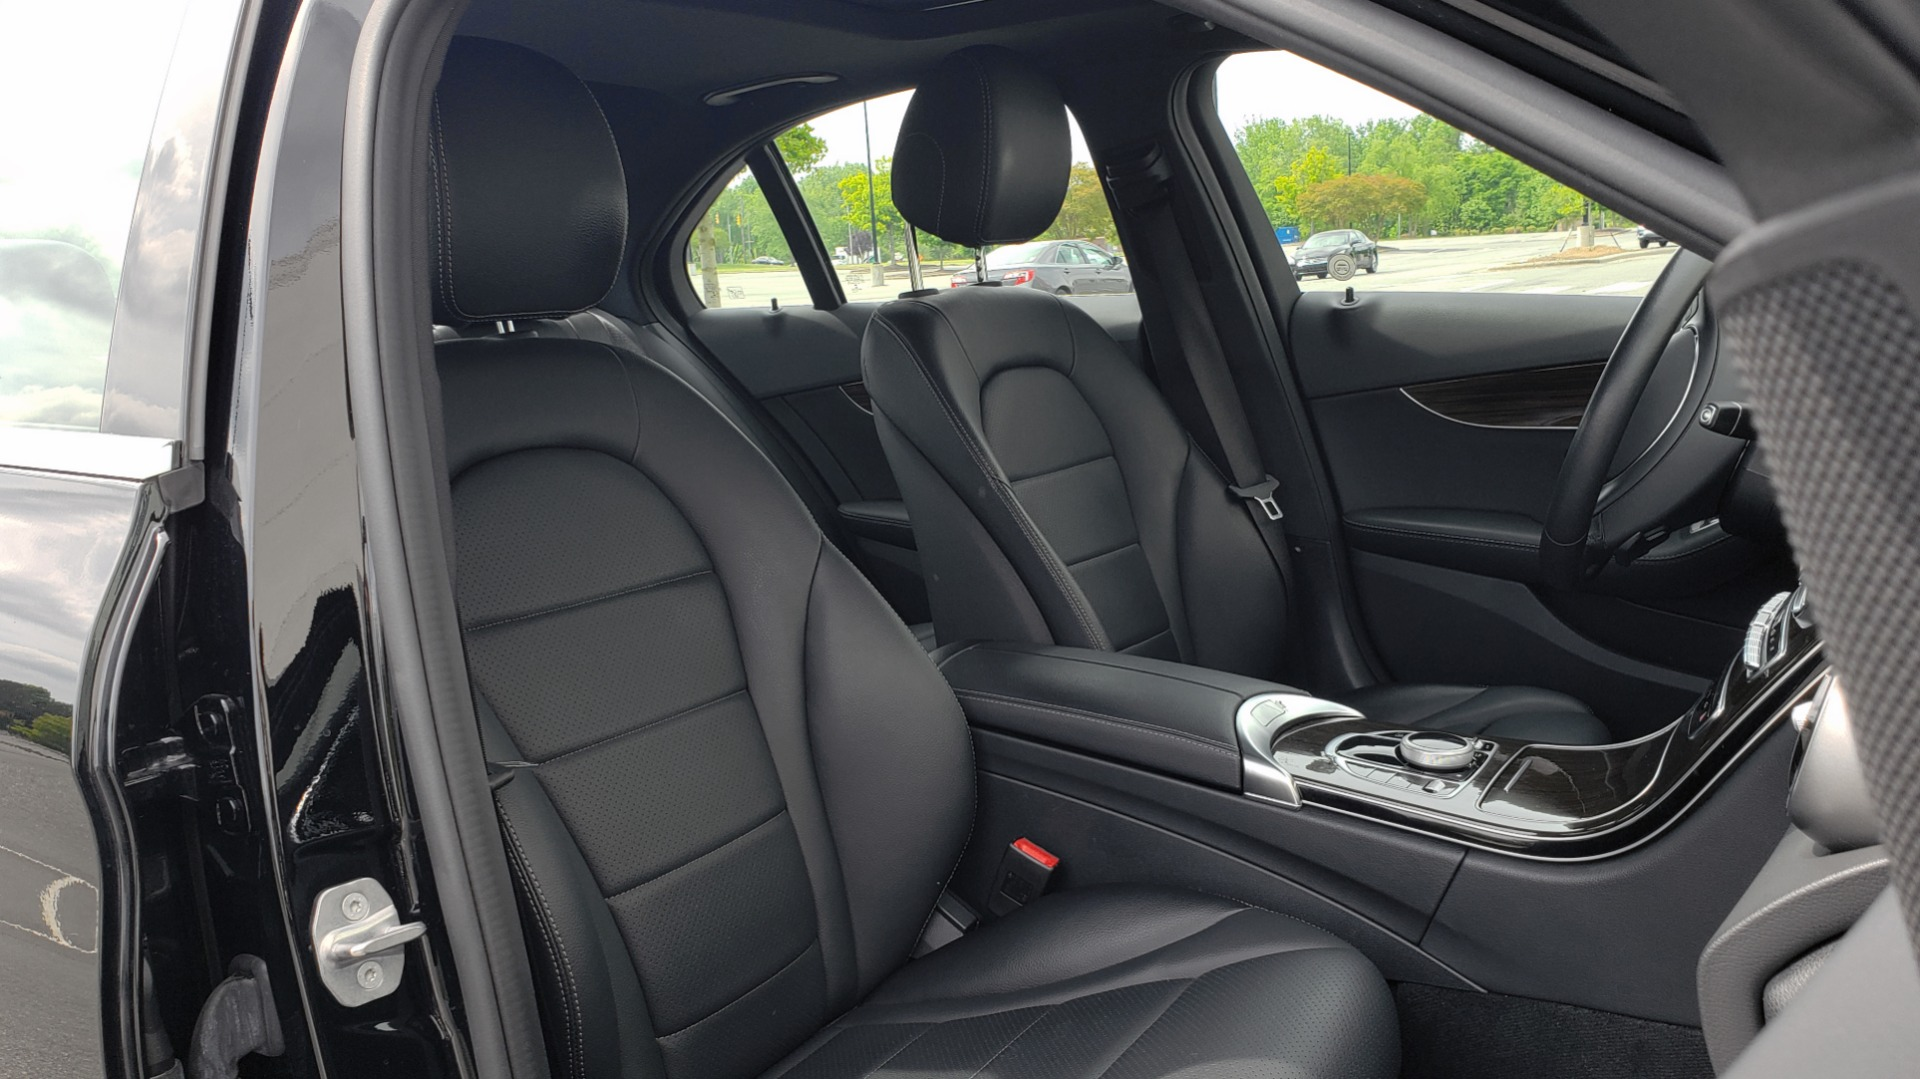 Used 2018 Mercedes-Benz C-CLASS C 300 PREMIUM / HTD STS / APPLE CARPLAY / 18IN WHEELS / REARVIEW for sale $24,795 at Formula Imports in Charlotte NC 28227 71